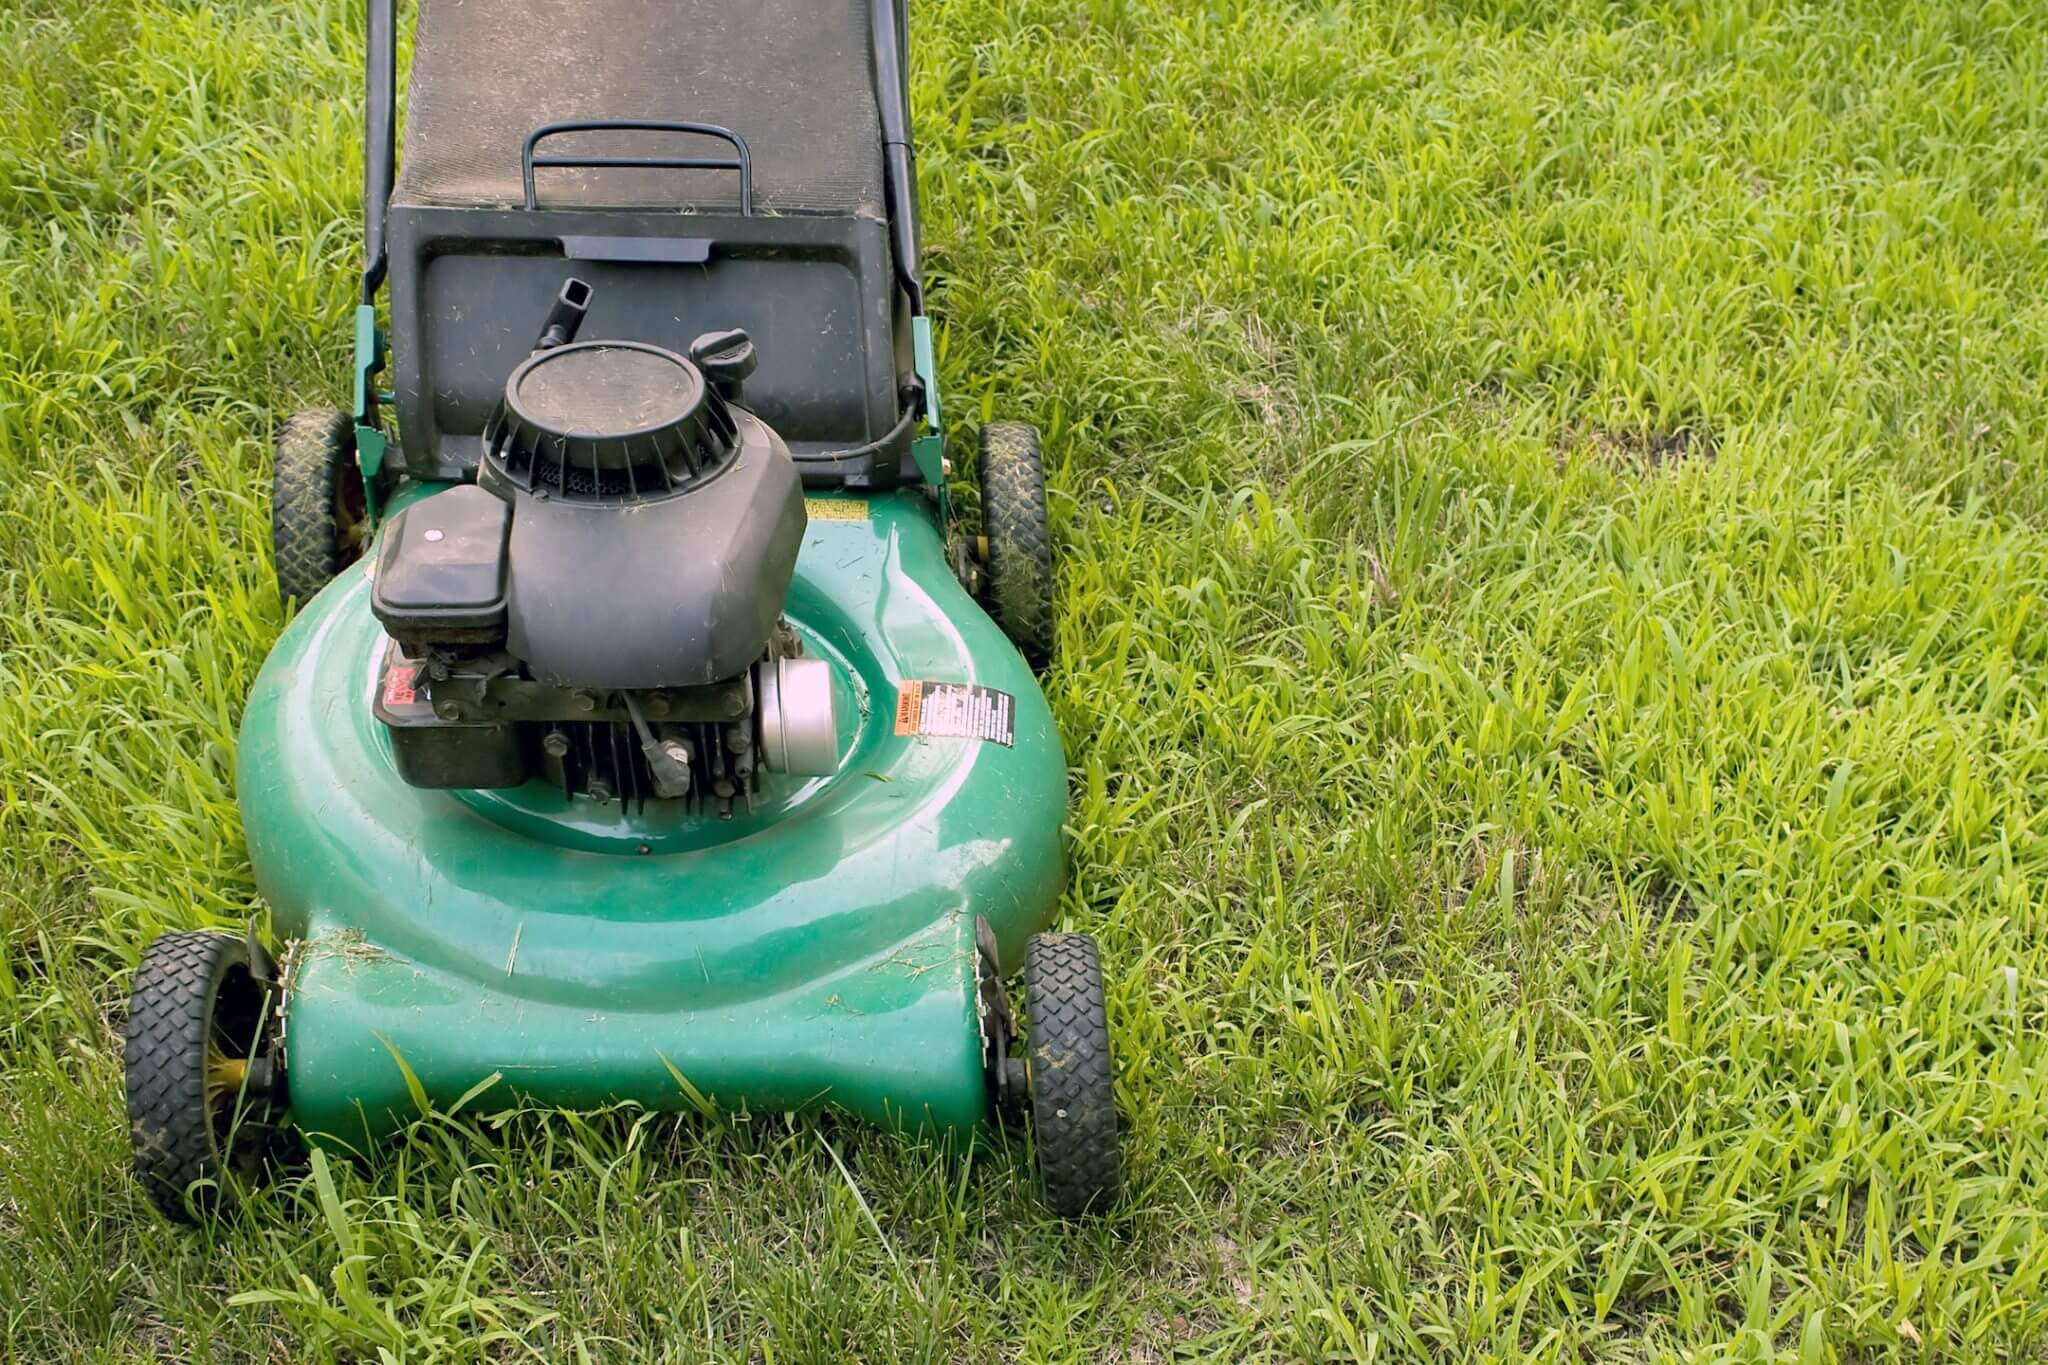 Lawn care blog mr tree and lawn service in gainesville fl for Lawn mower cutting grass